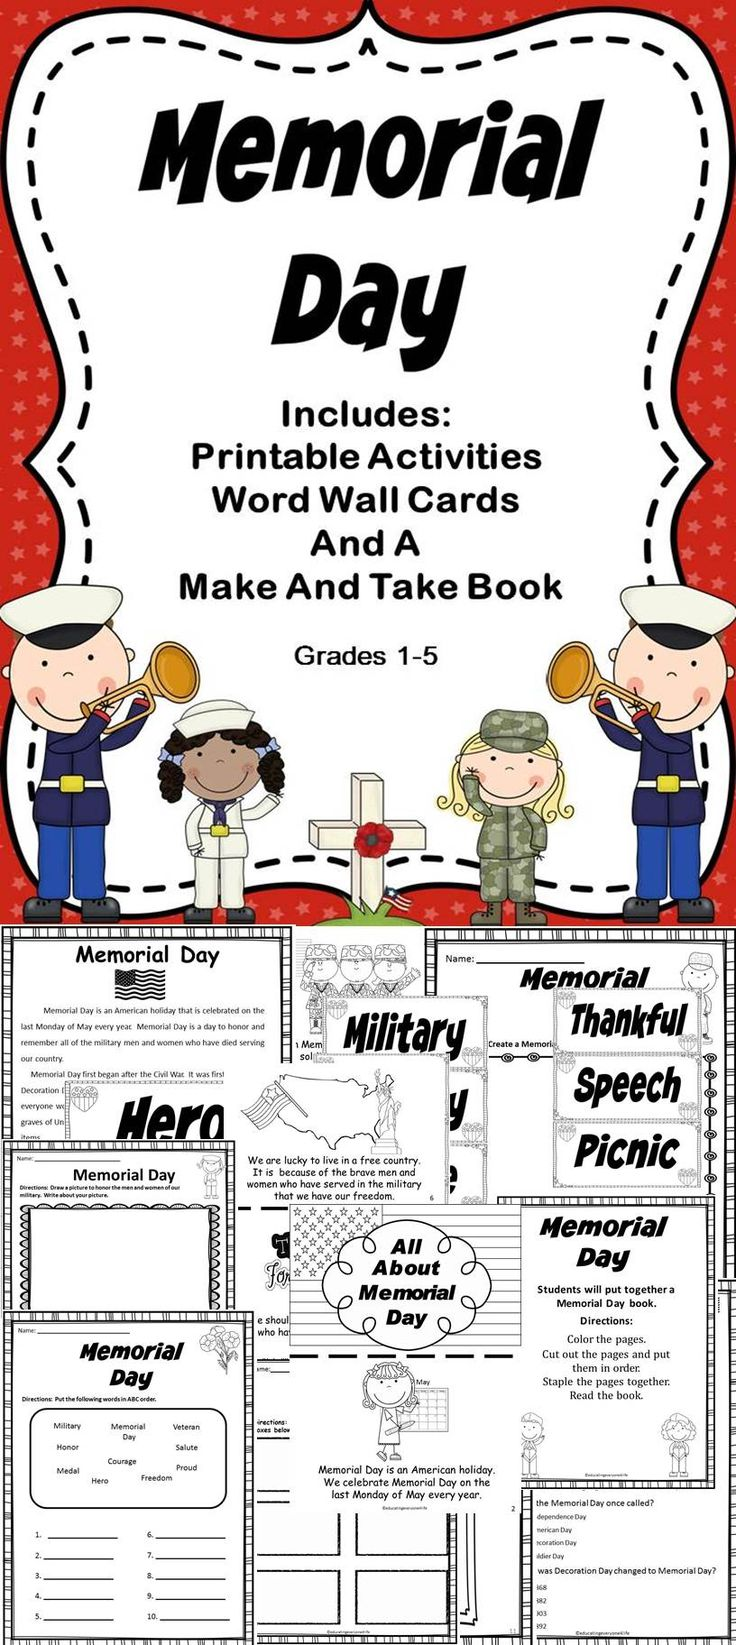 Memorial Day - Includes literacy activities all about Memorial Day! #education